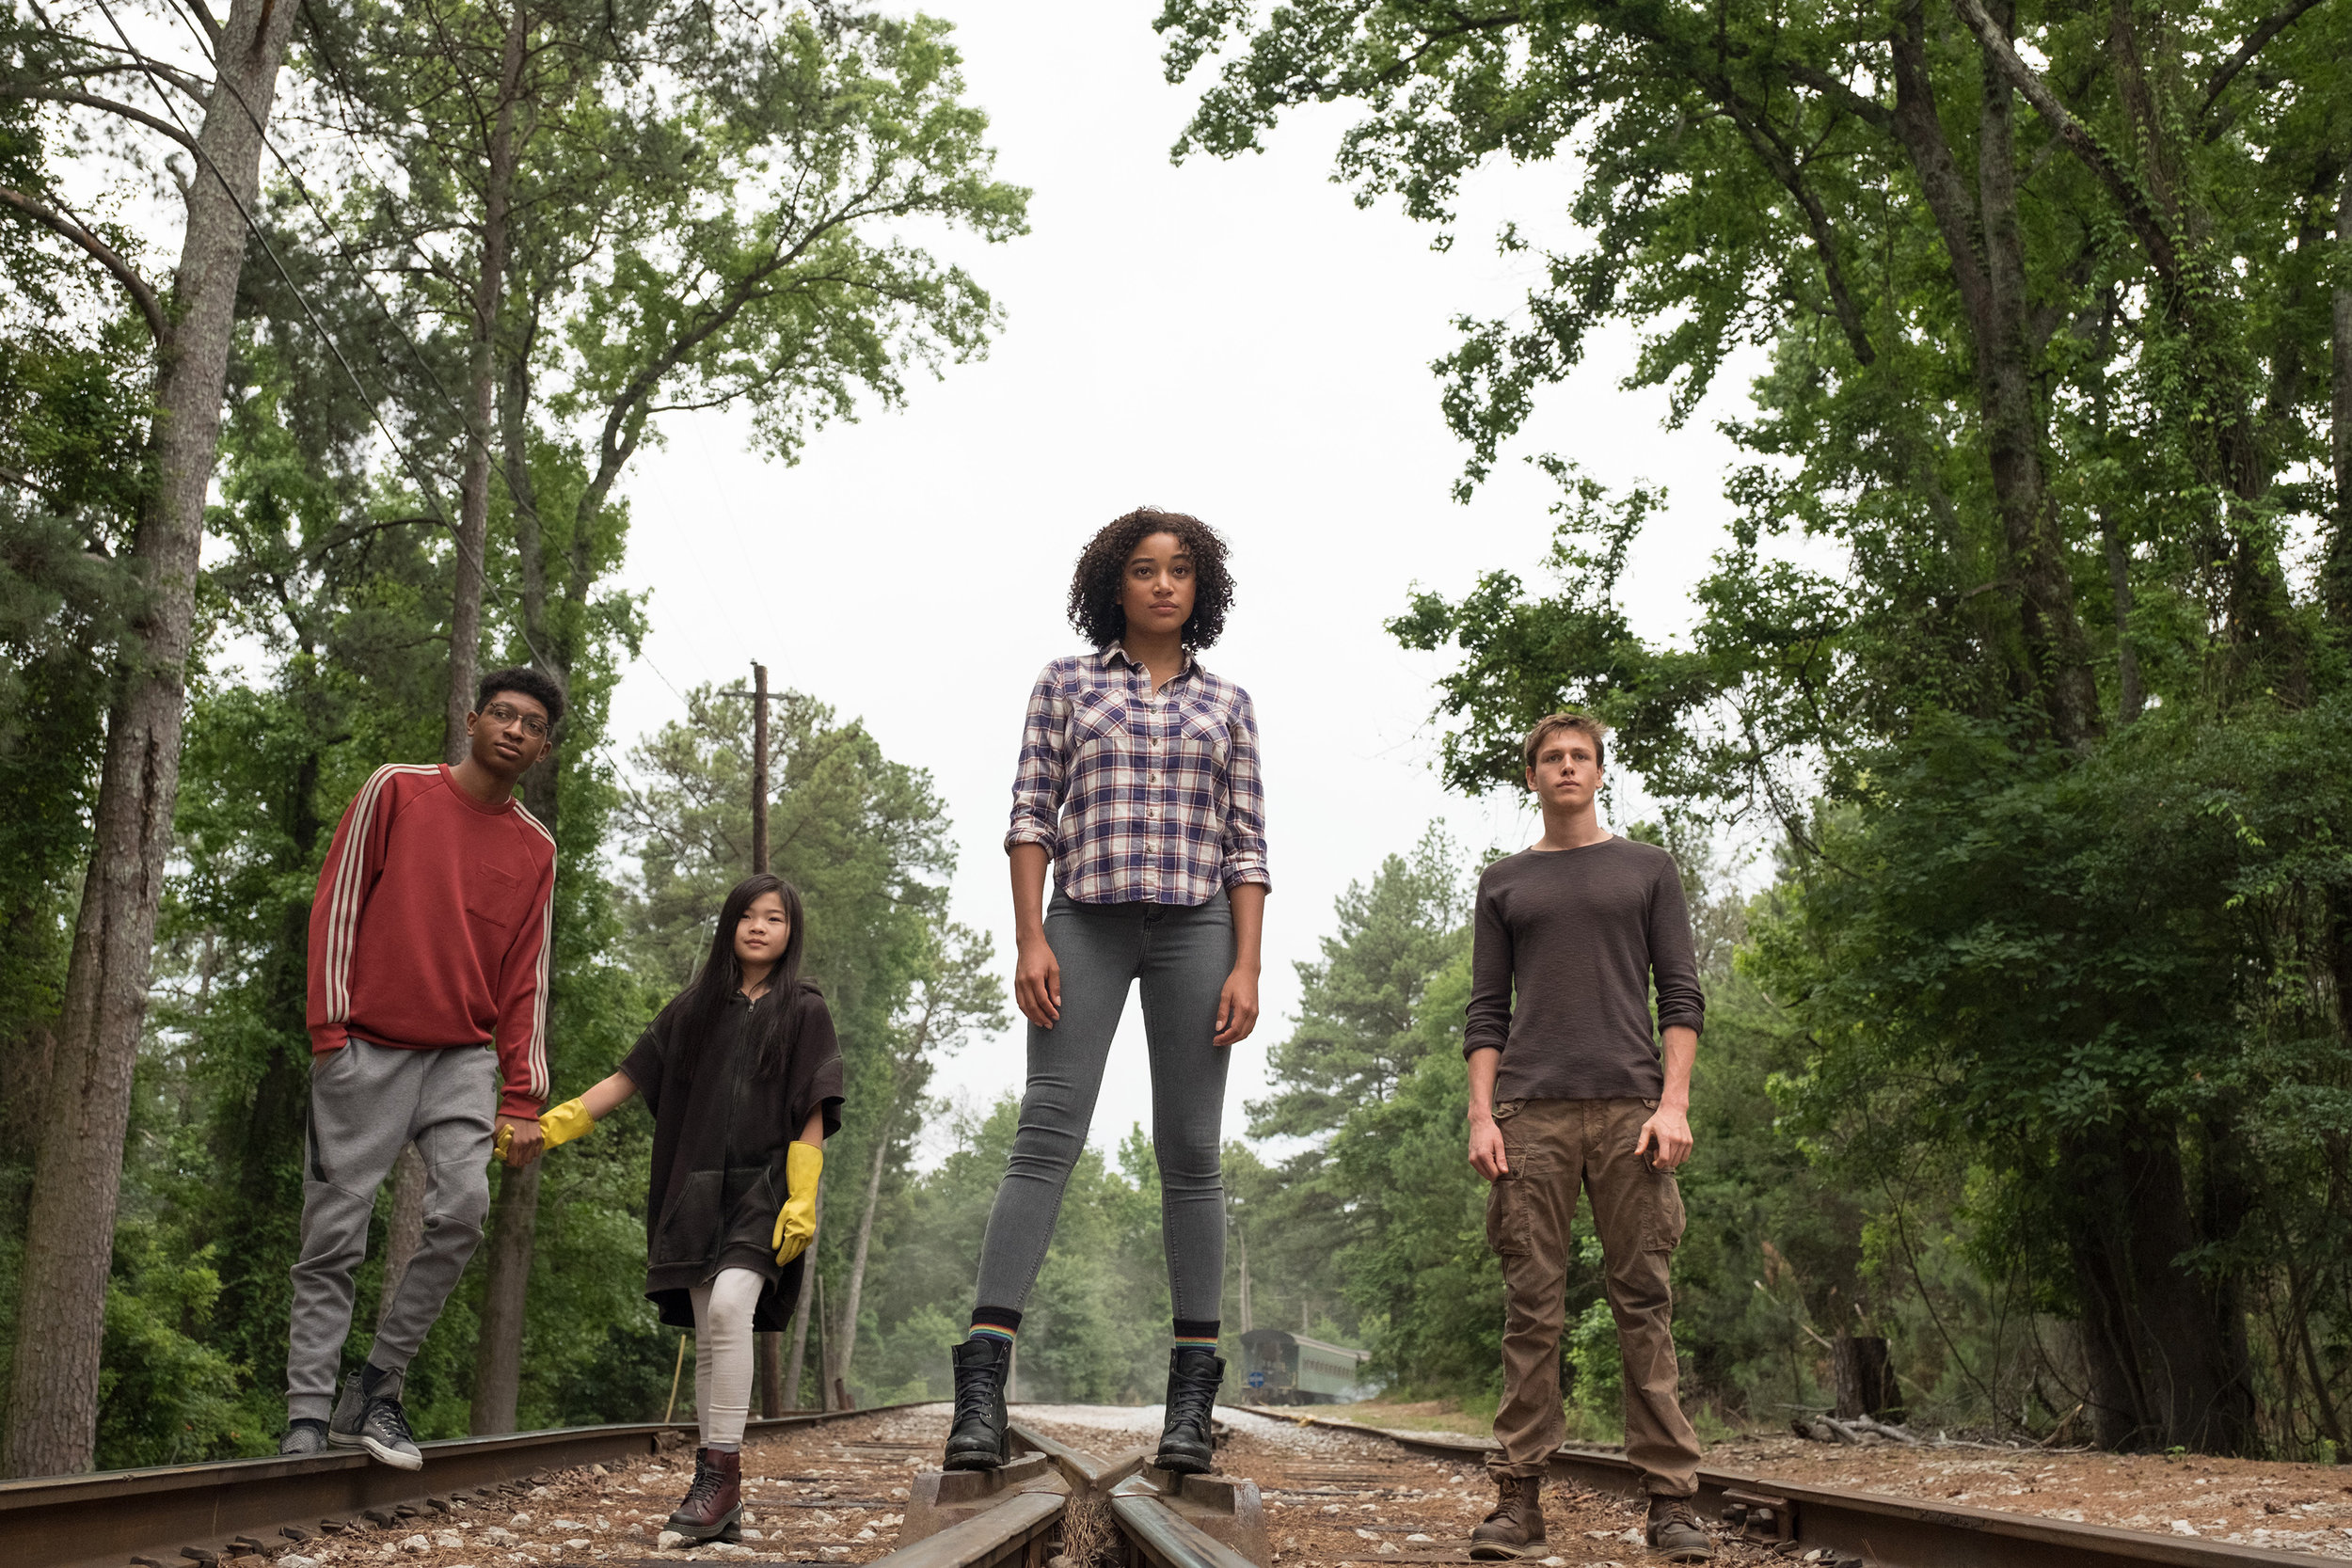 """Chubs (Skylan Brooks), Zu (Mia Cech), Ruby (Amandla Stenberg) and Liam (Harris Dickinson), from left, join forces in the dystopian adventure """"The Darkest Minds."""" (Photo by Daniel McFadden, courtesy of 20th Century Fox)"""